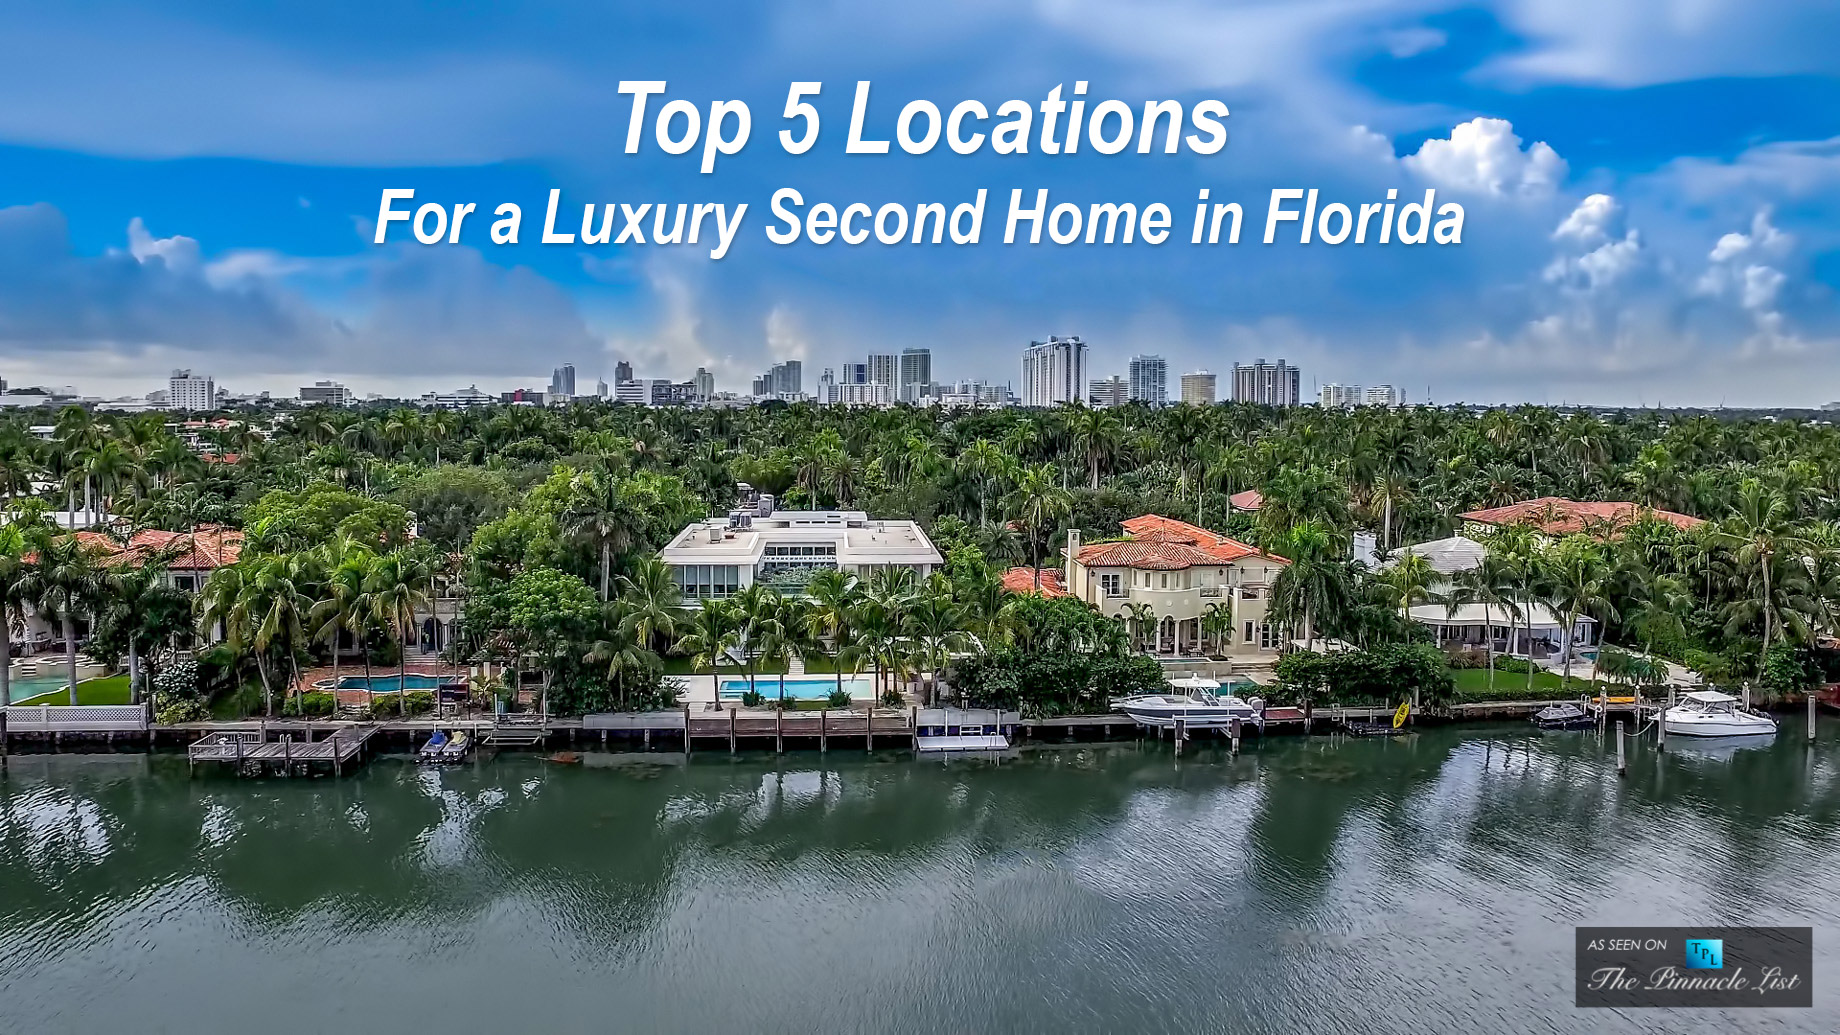 Top 5 Locations For a Luxury Second Home in Florida